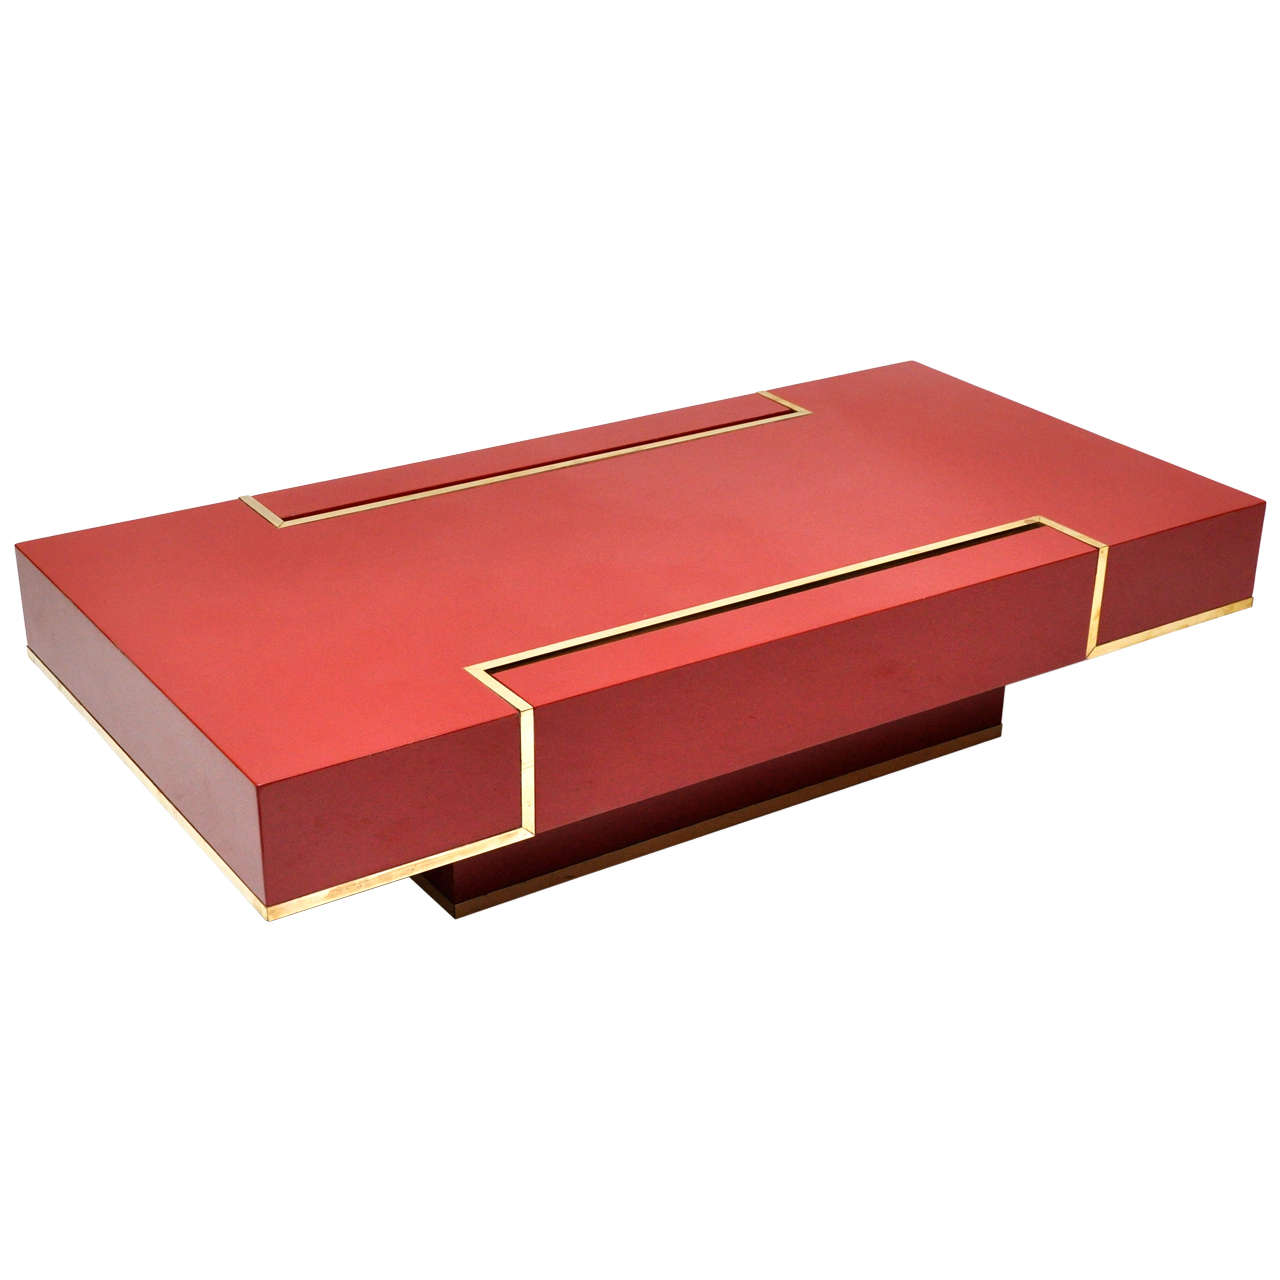 Rare Maison Jansen Red Lacquer Coffee Table At 1stdibs